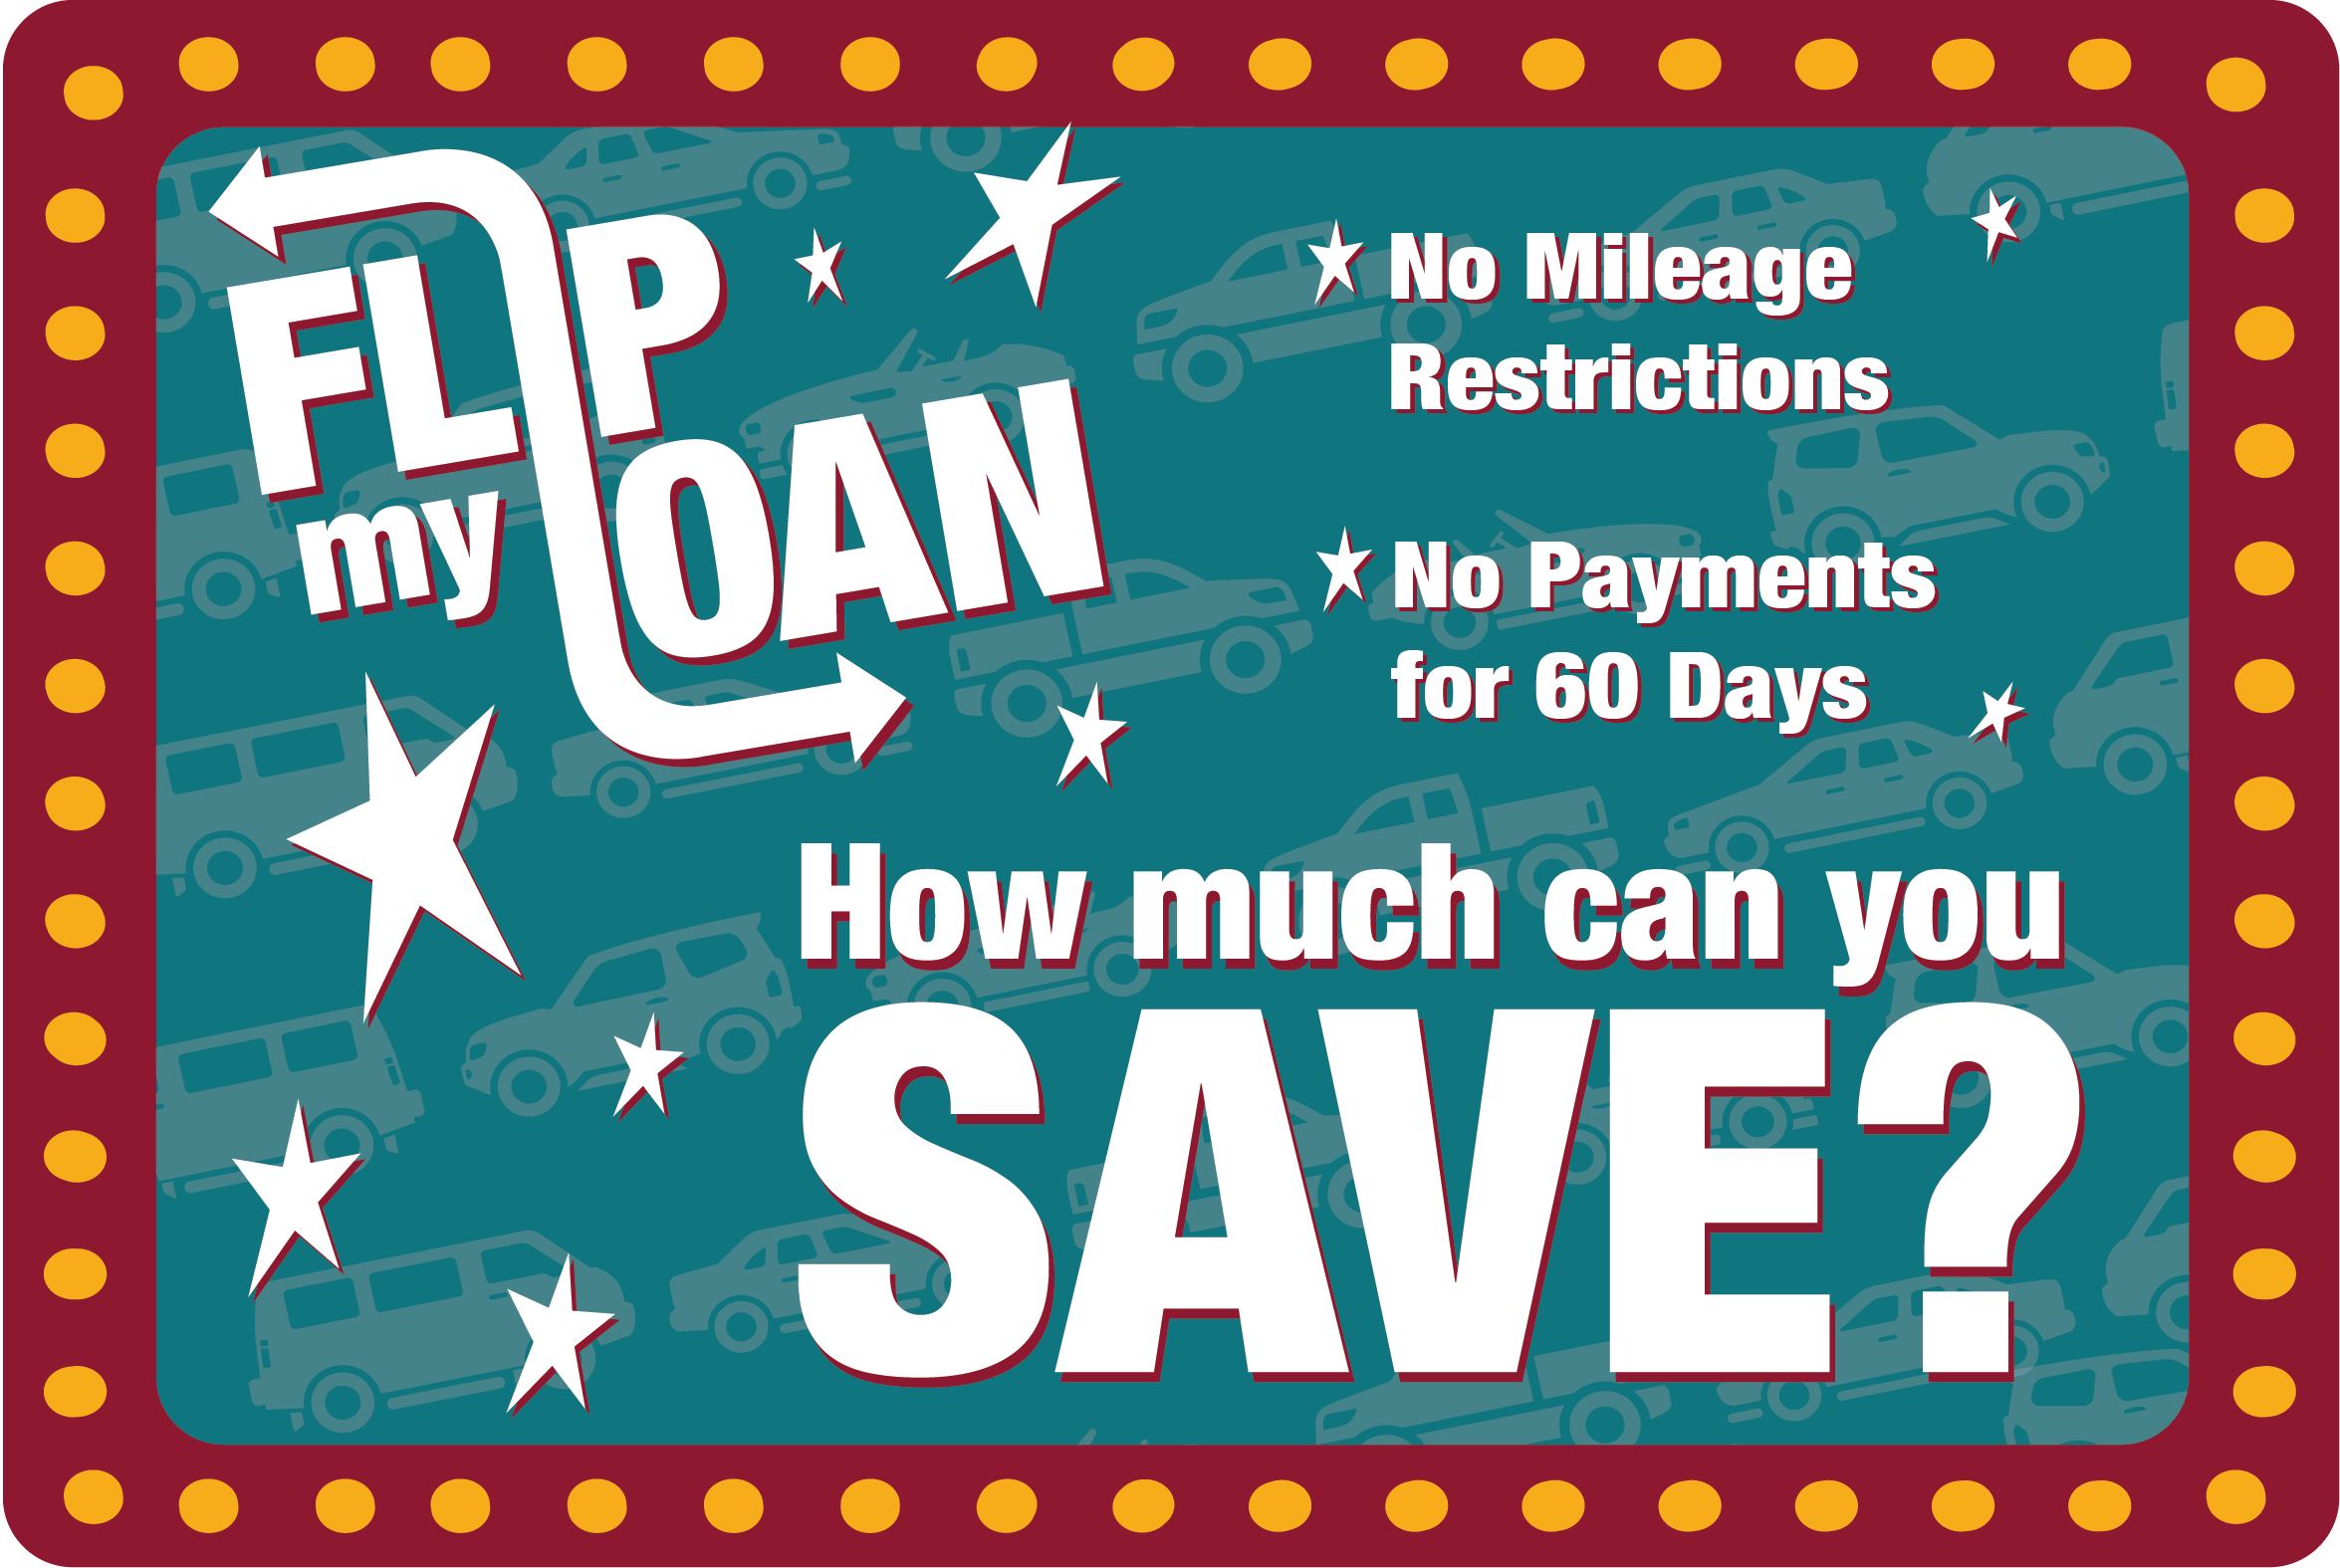 How much can you save when you flip your loan to Southeast Financial? No mileage restrictions. No payment for 60 days.